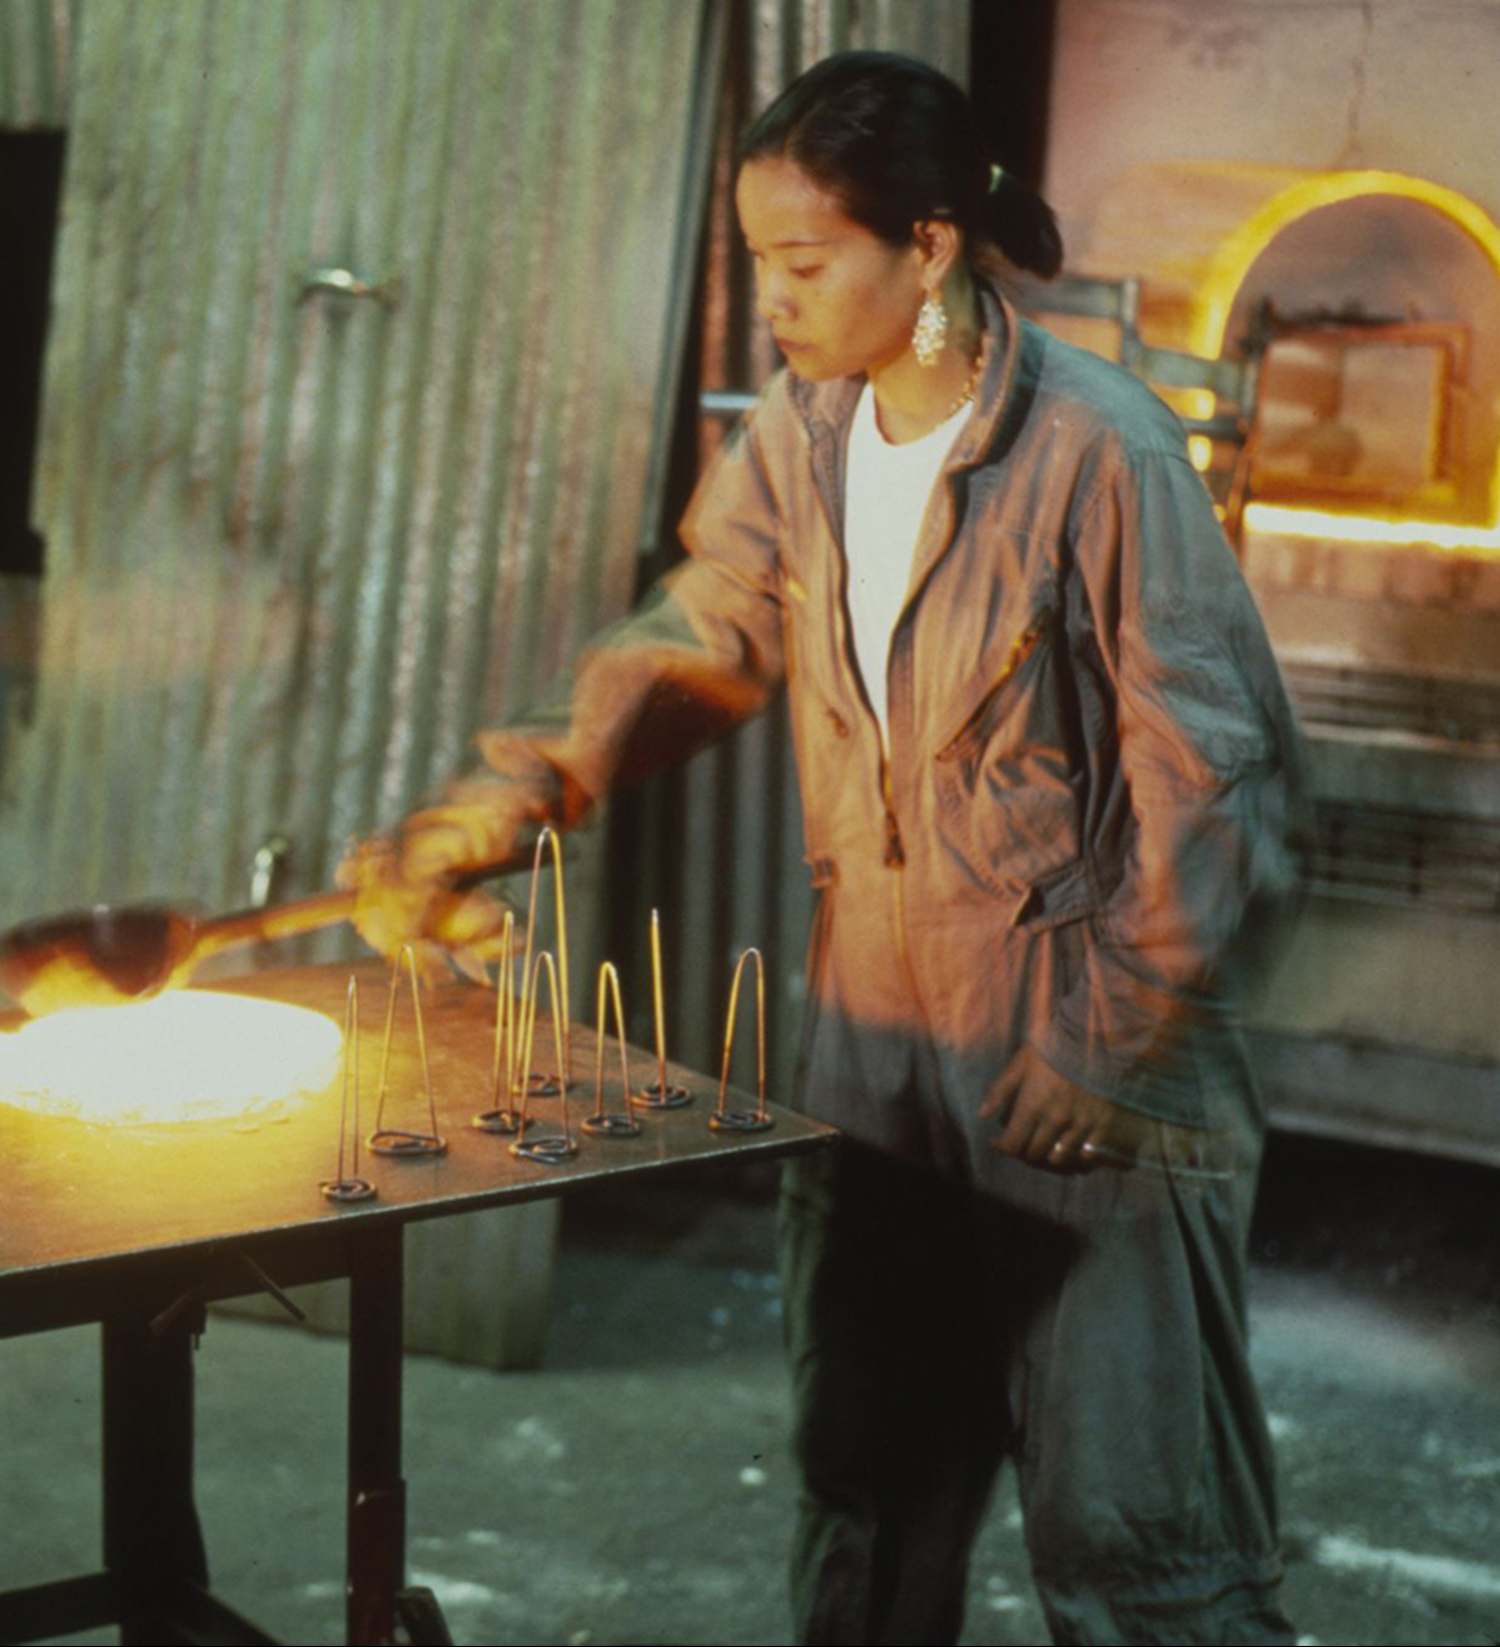 IZABEL LAM MAKING GLASS